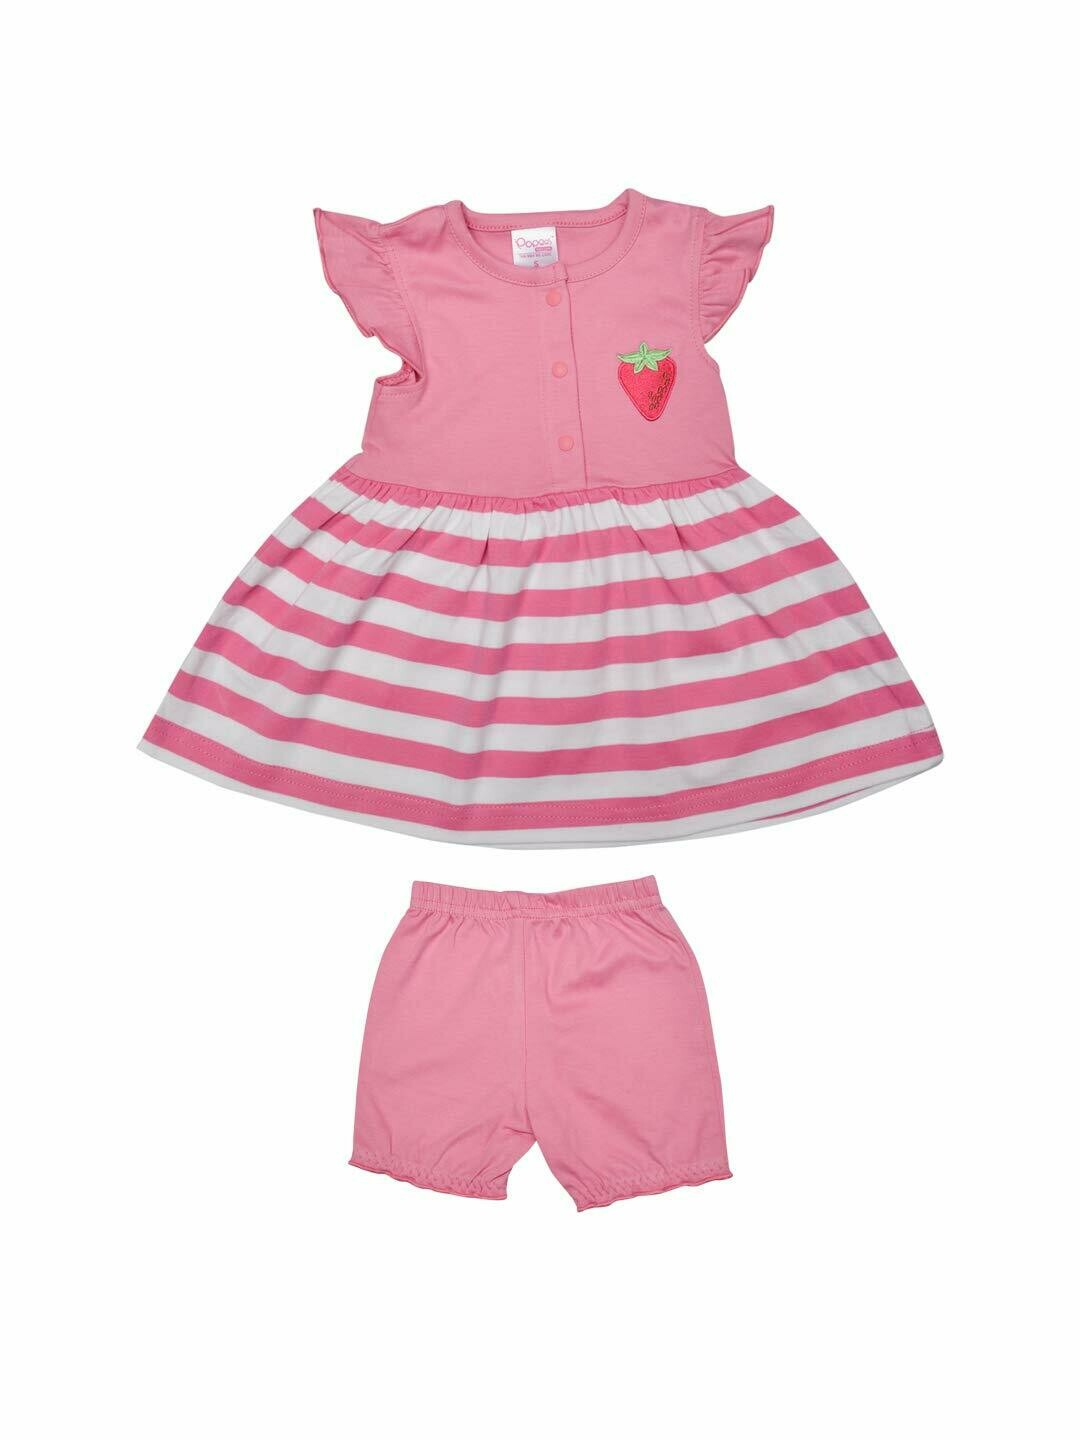 Margot Azalea Pink 2120  Cap Sleeves Round Neck Striped Frock with Shorts